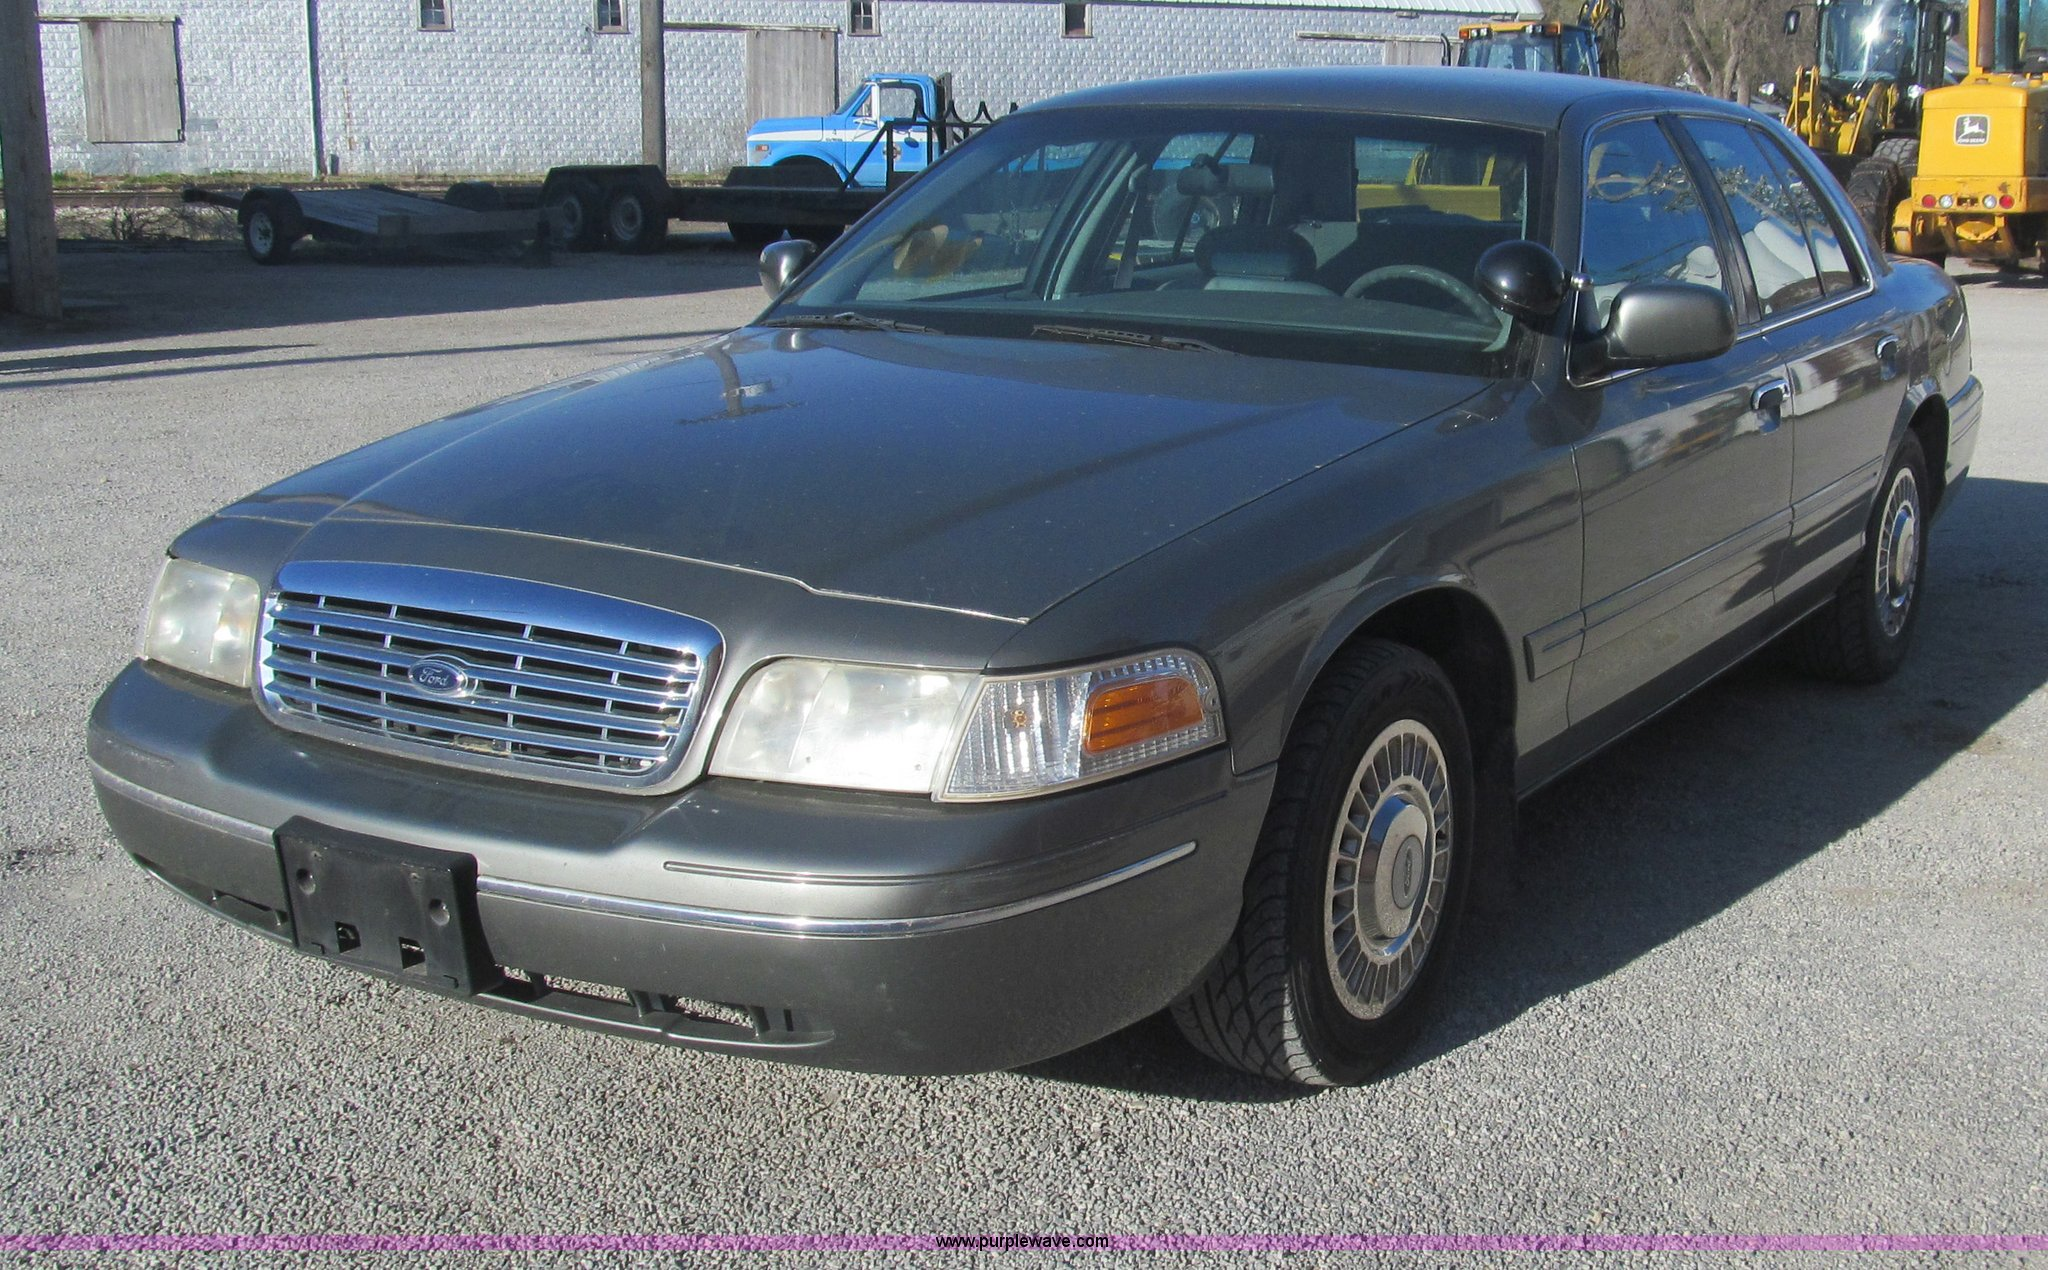 2000 ford crown victoria police interceptor item i7127 s i7127e i7127 ford crown victoria 4 6l ford crown victoria 4 6l